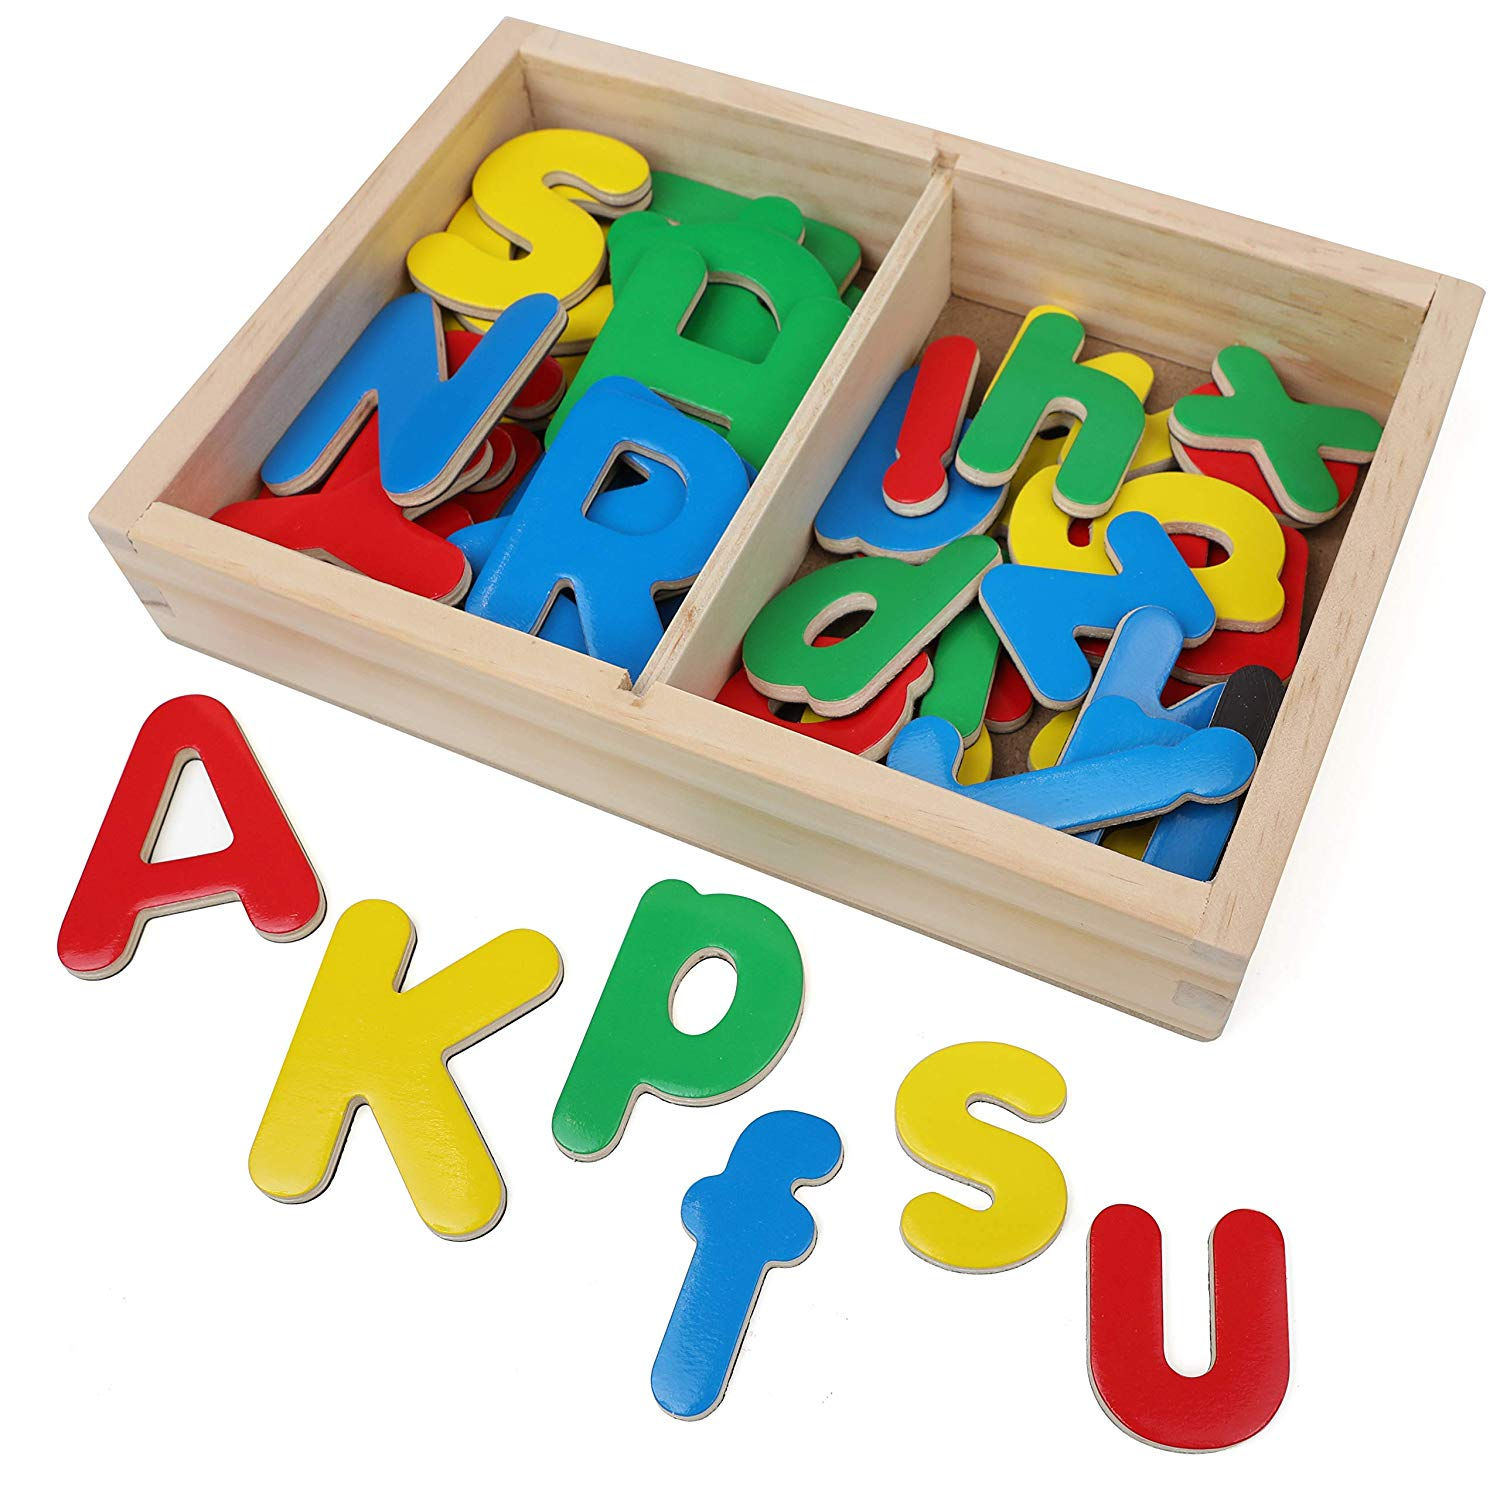 IQ Toys Wooden ABC Magnets, 52 Magnetic Uppercase and Lowercase Letters with Wooden Storage Box